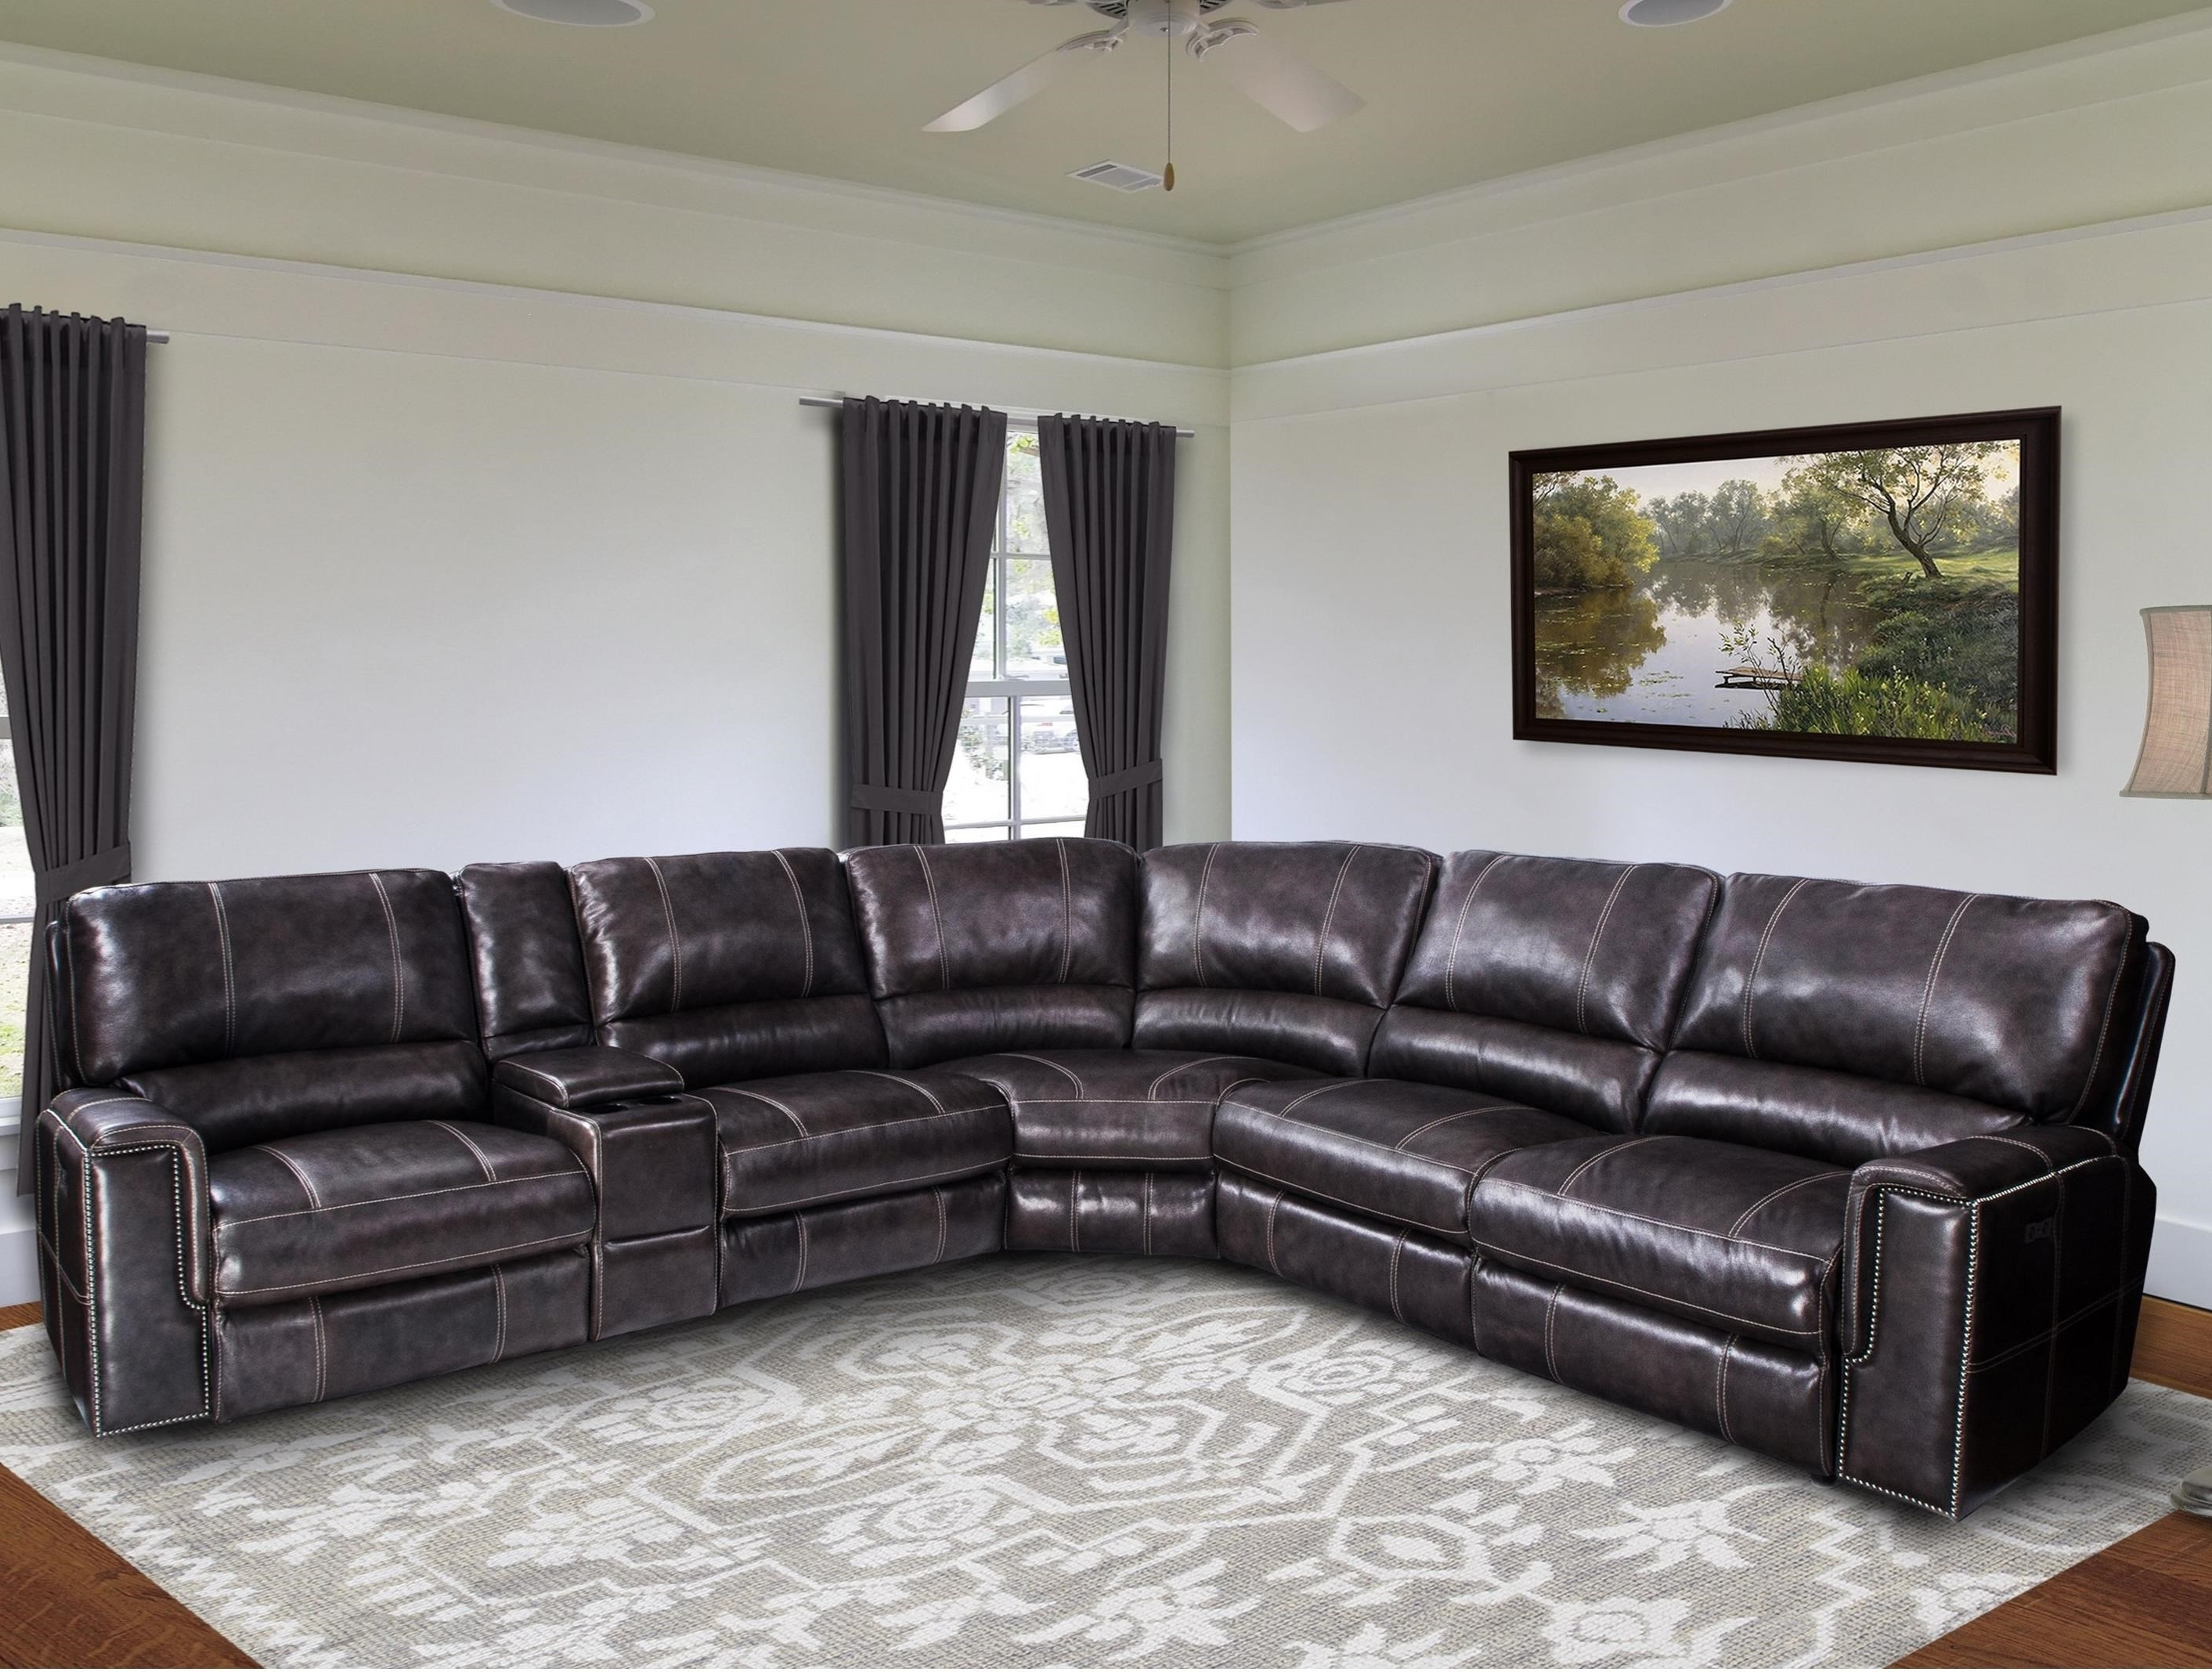 2019 Jerome Casual Power Reclining Sectional Sofa With Power Headrests With Jerome's Sectional Sofas (View 2 of 20)